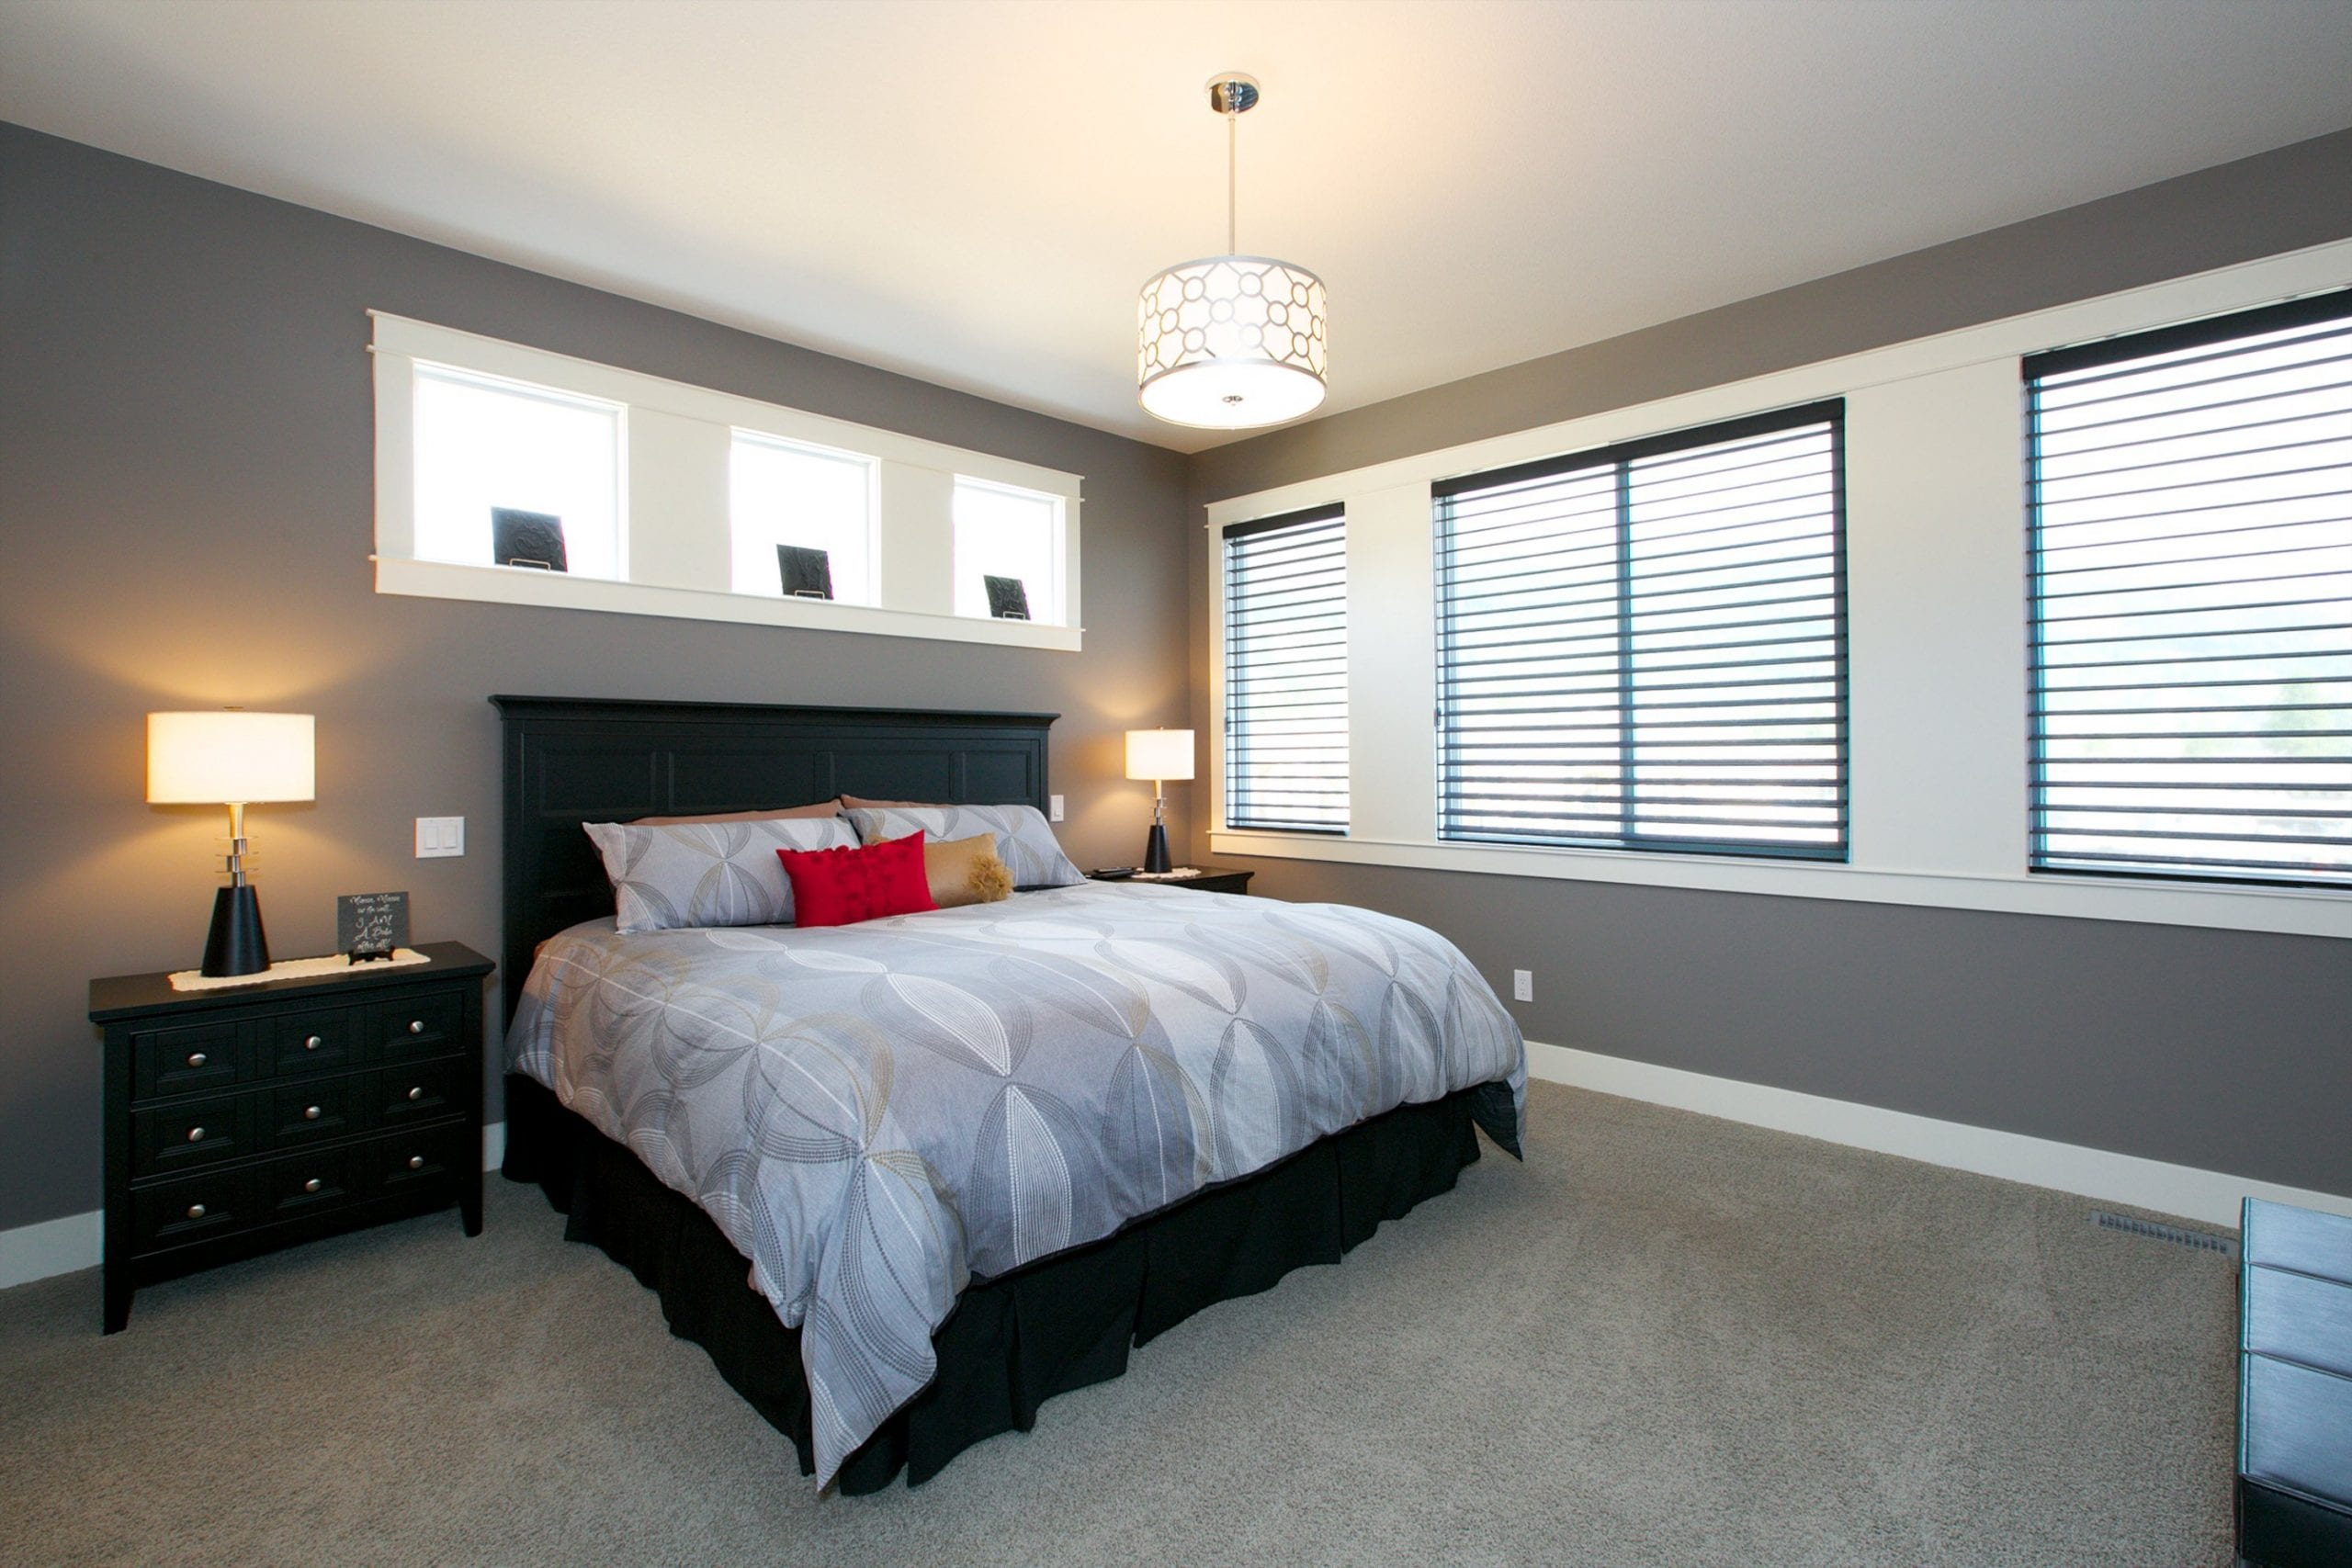 interior shot of west harbour home master bedroom with three windows above the bed flanked by two nightstands